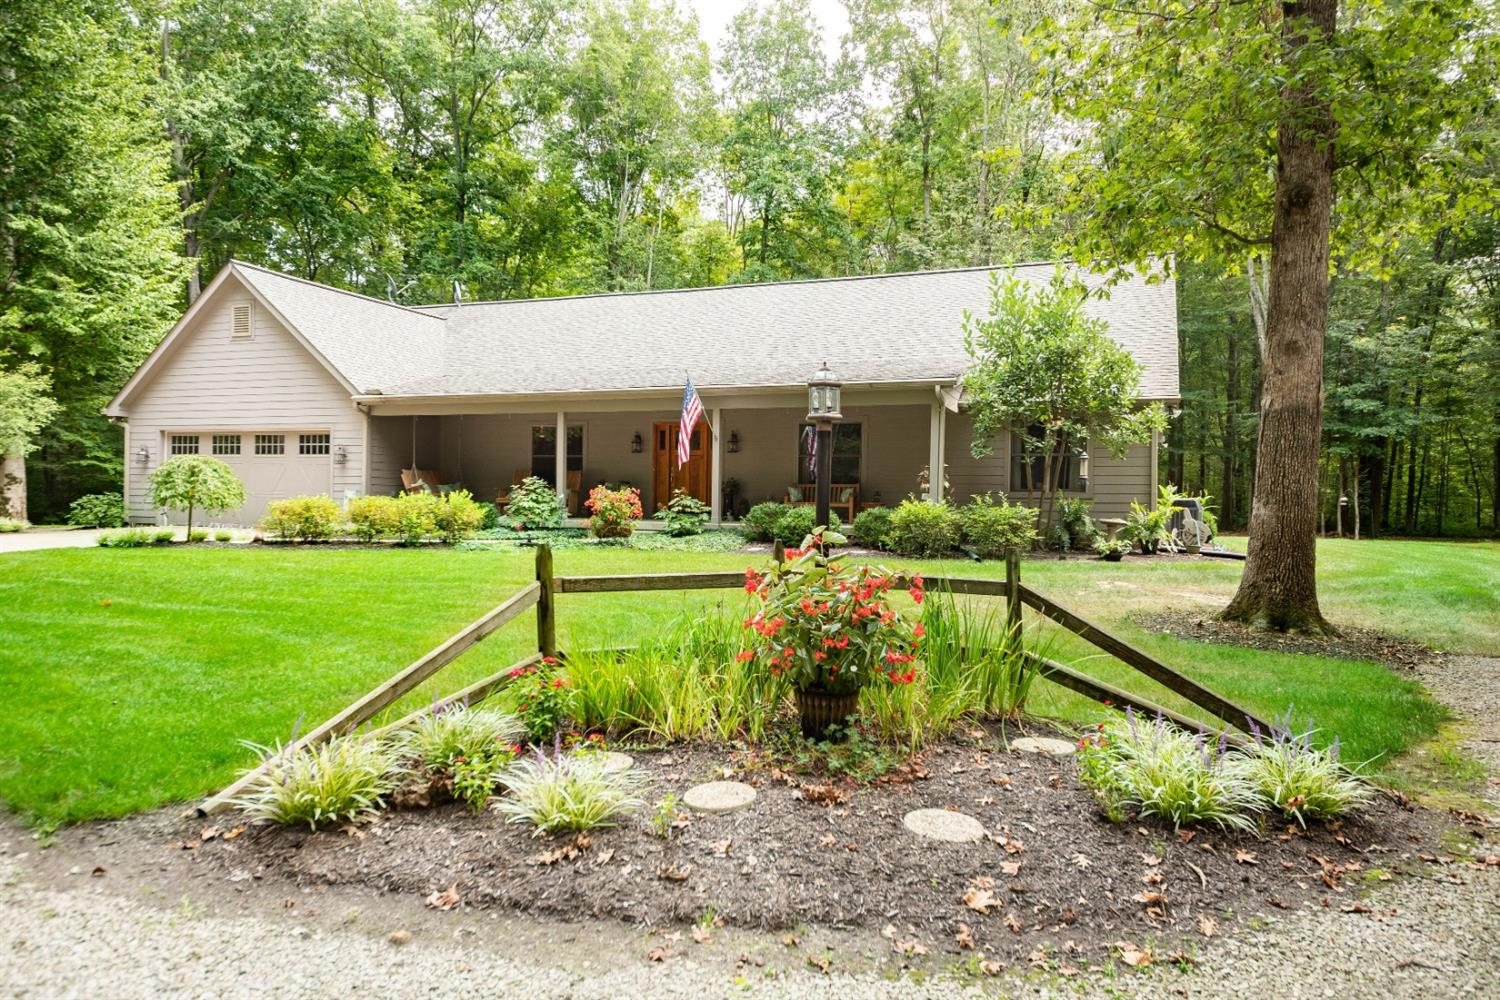 16530 Clements Rd Green Twp. - Brown Co., OH